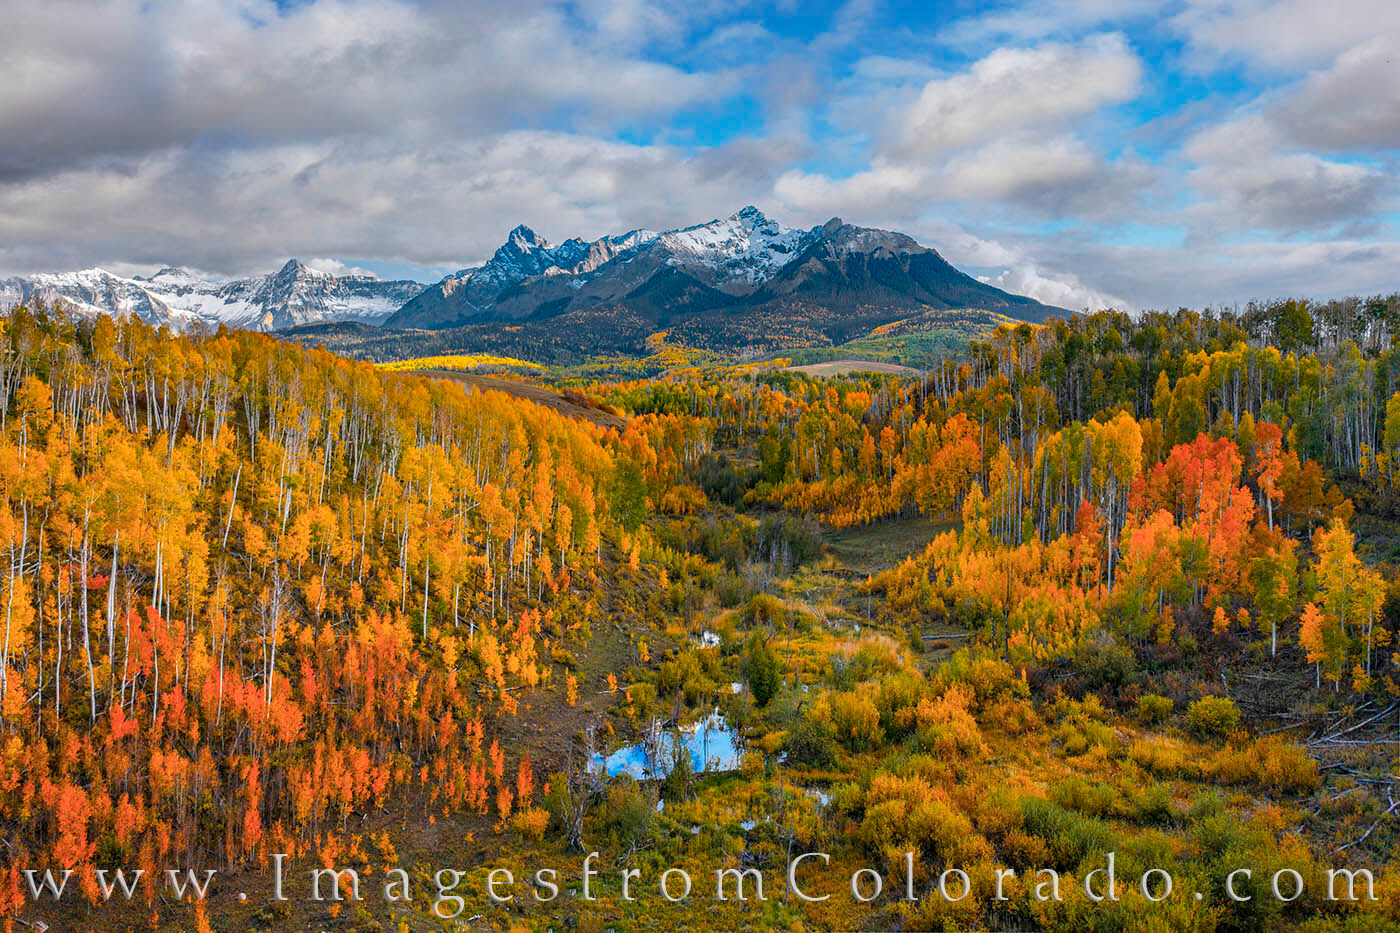 From high above a beautiful valley, the orange and gold colors of Autumn seem to glow in this late afternoon view of Hayden Peak...